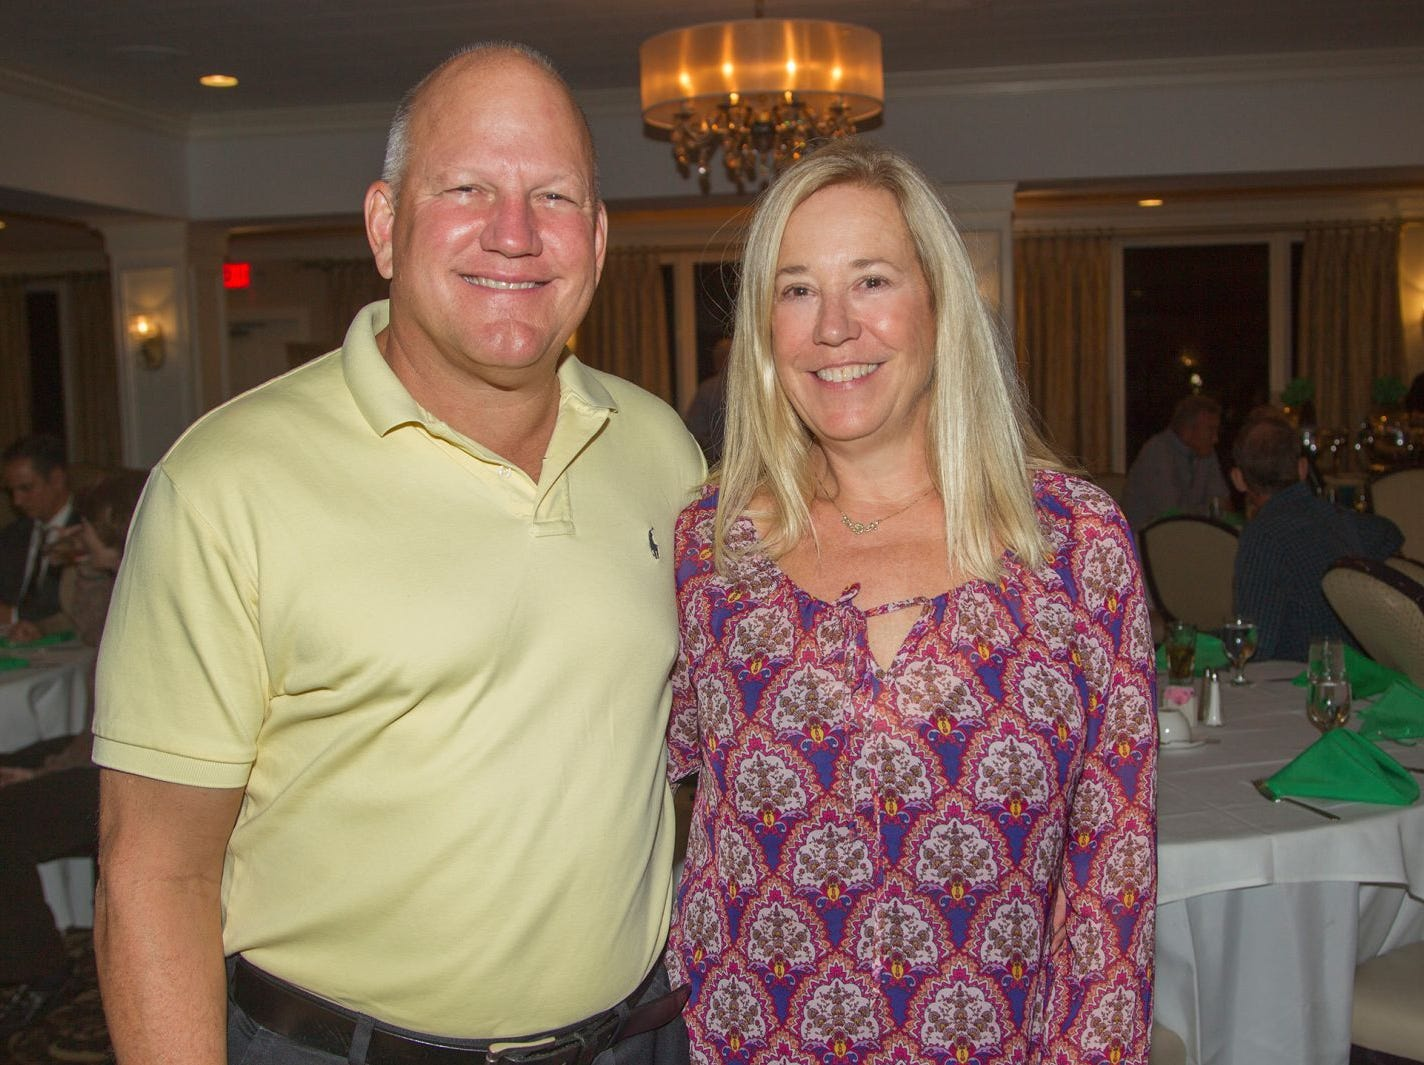 Lou and Julie Kuiken. Ken's Krew Golf Outing at White Beeches Country Club in Haworth. Ken's Krew provides vocational training and job placement services for young adults with intellectual and developmental disabilities. 10/09/2018